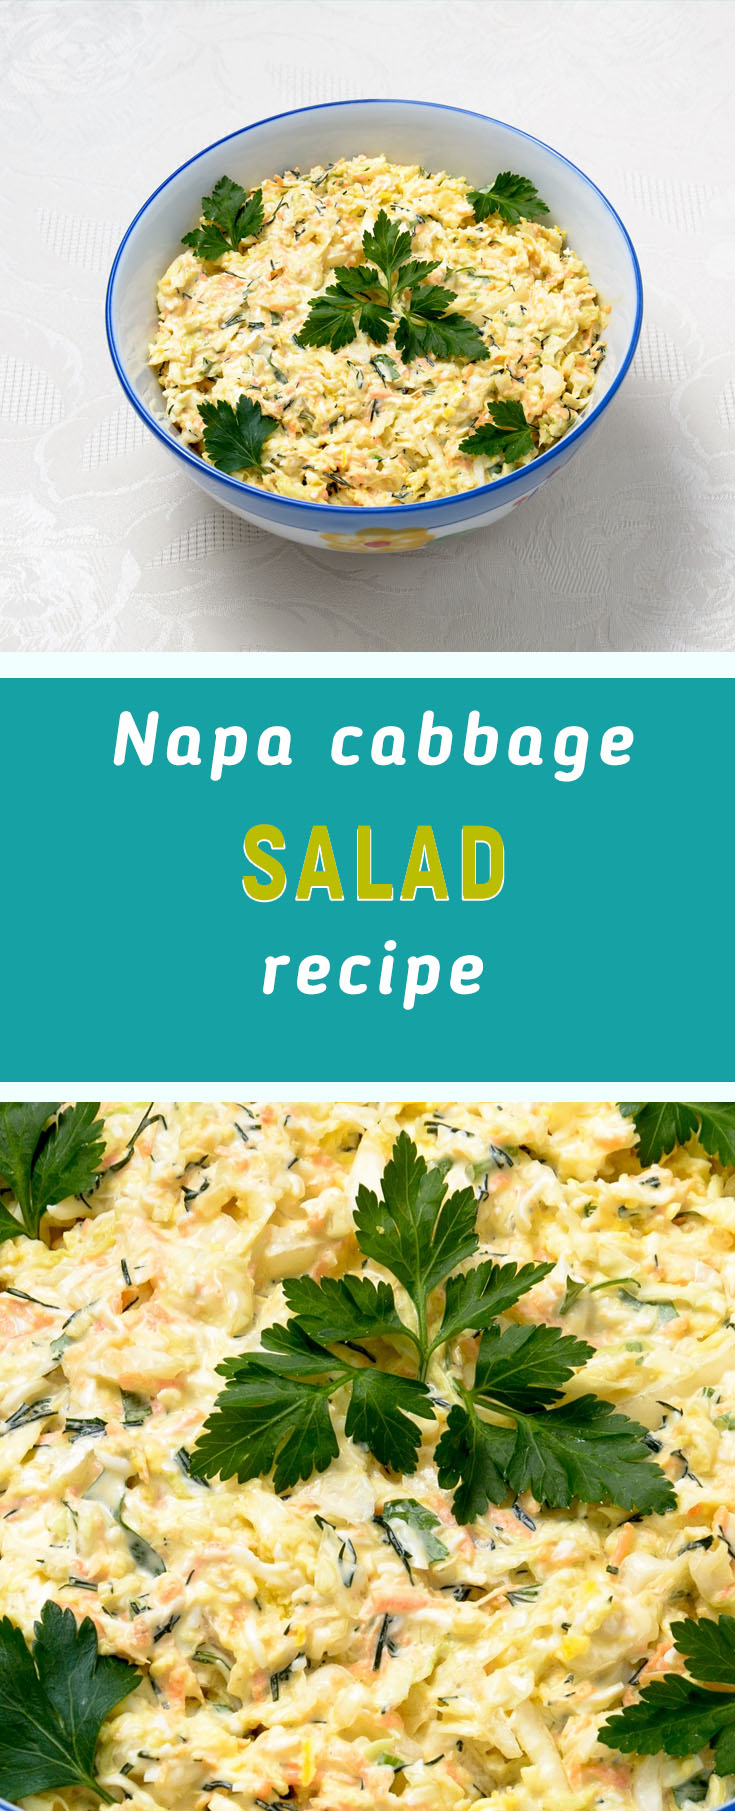 recipe for napa cabbage salad